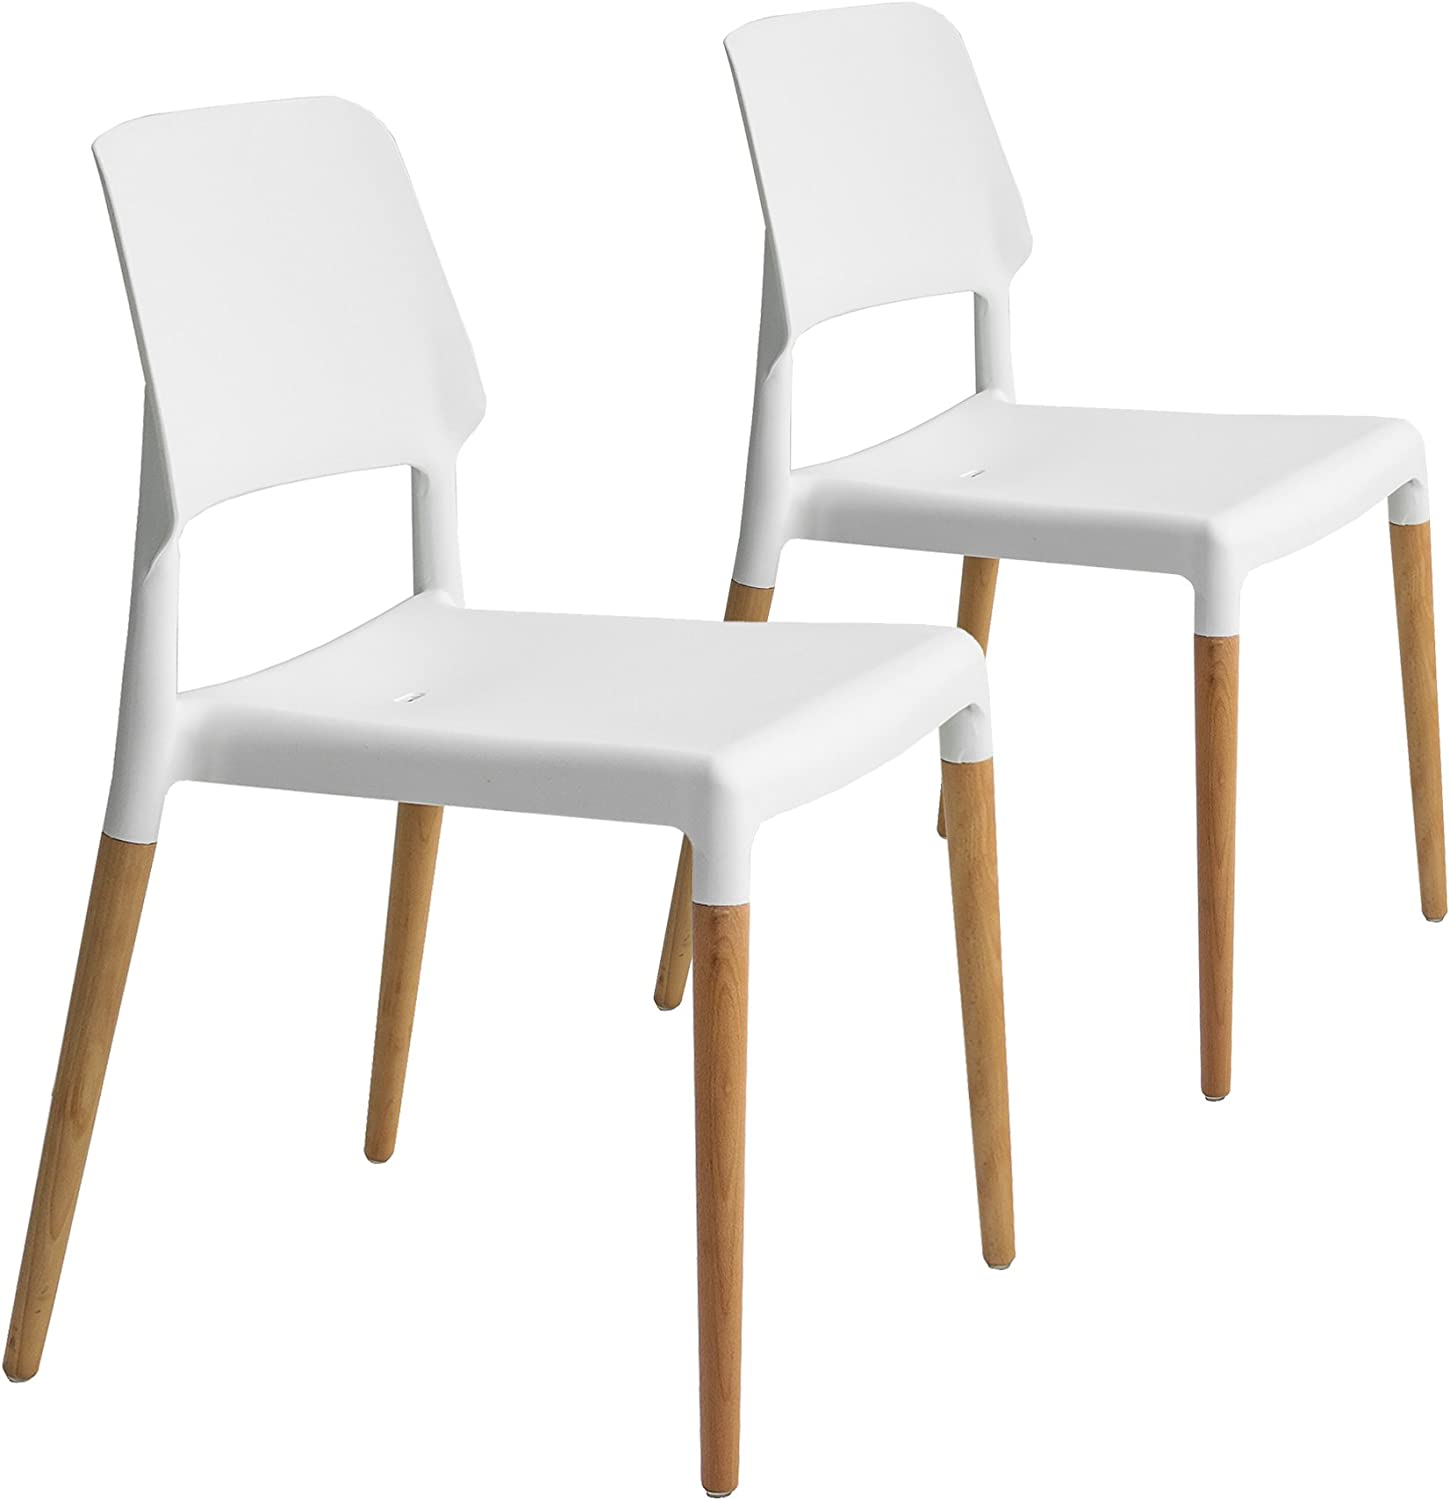 Buschman Set of Two White Dining Mid Century Modern Design Chairs